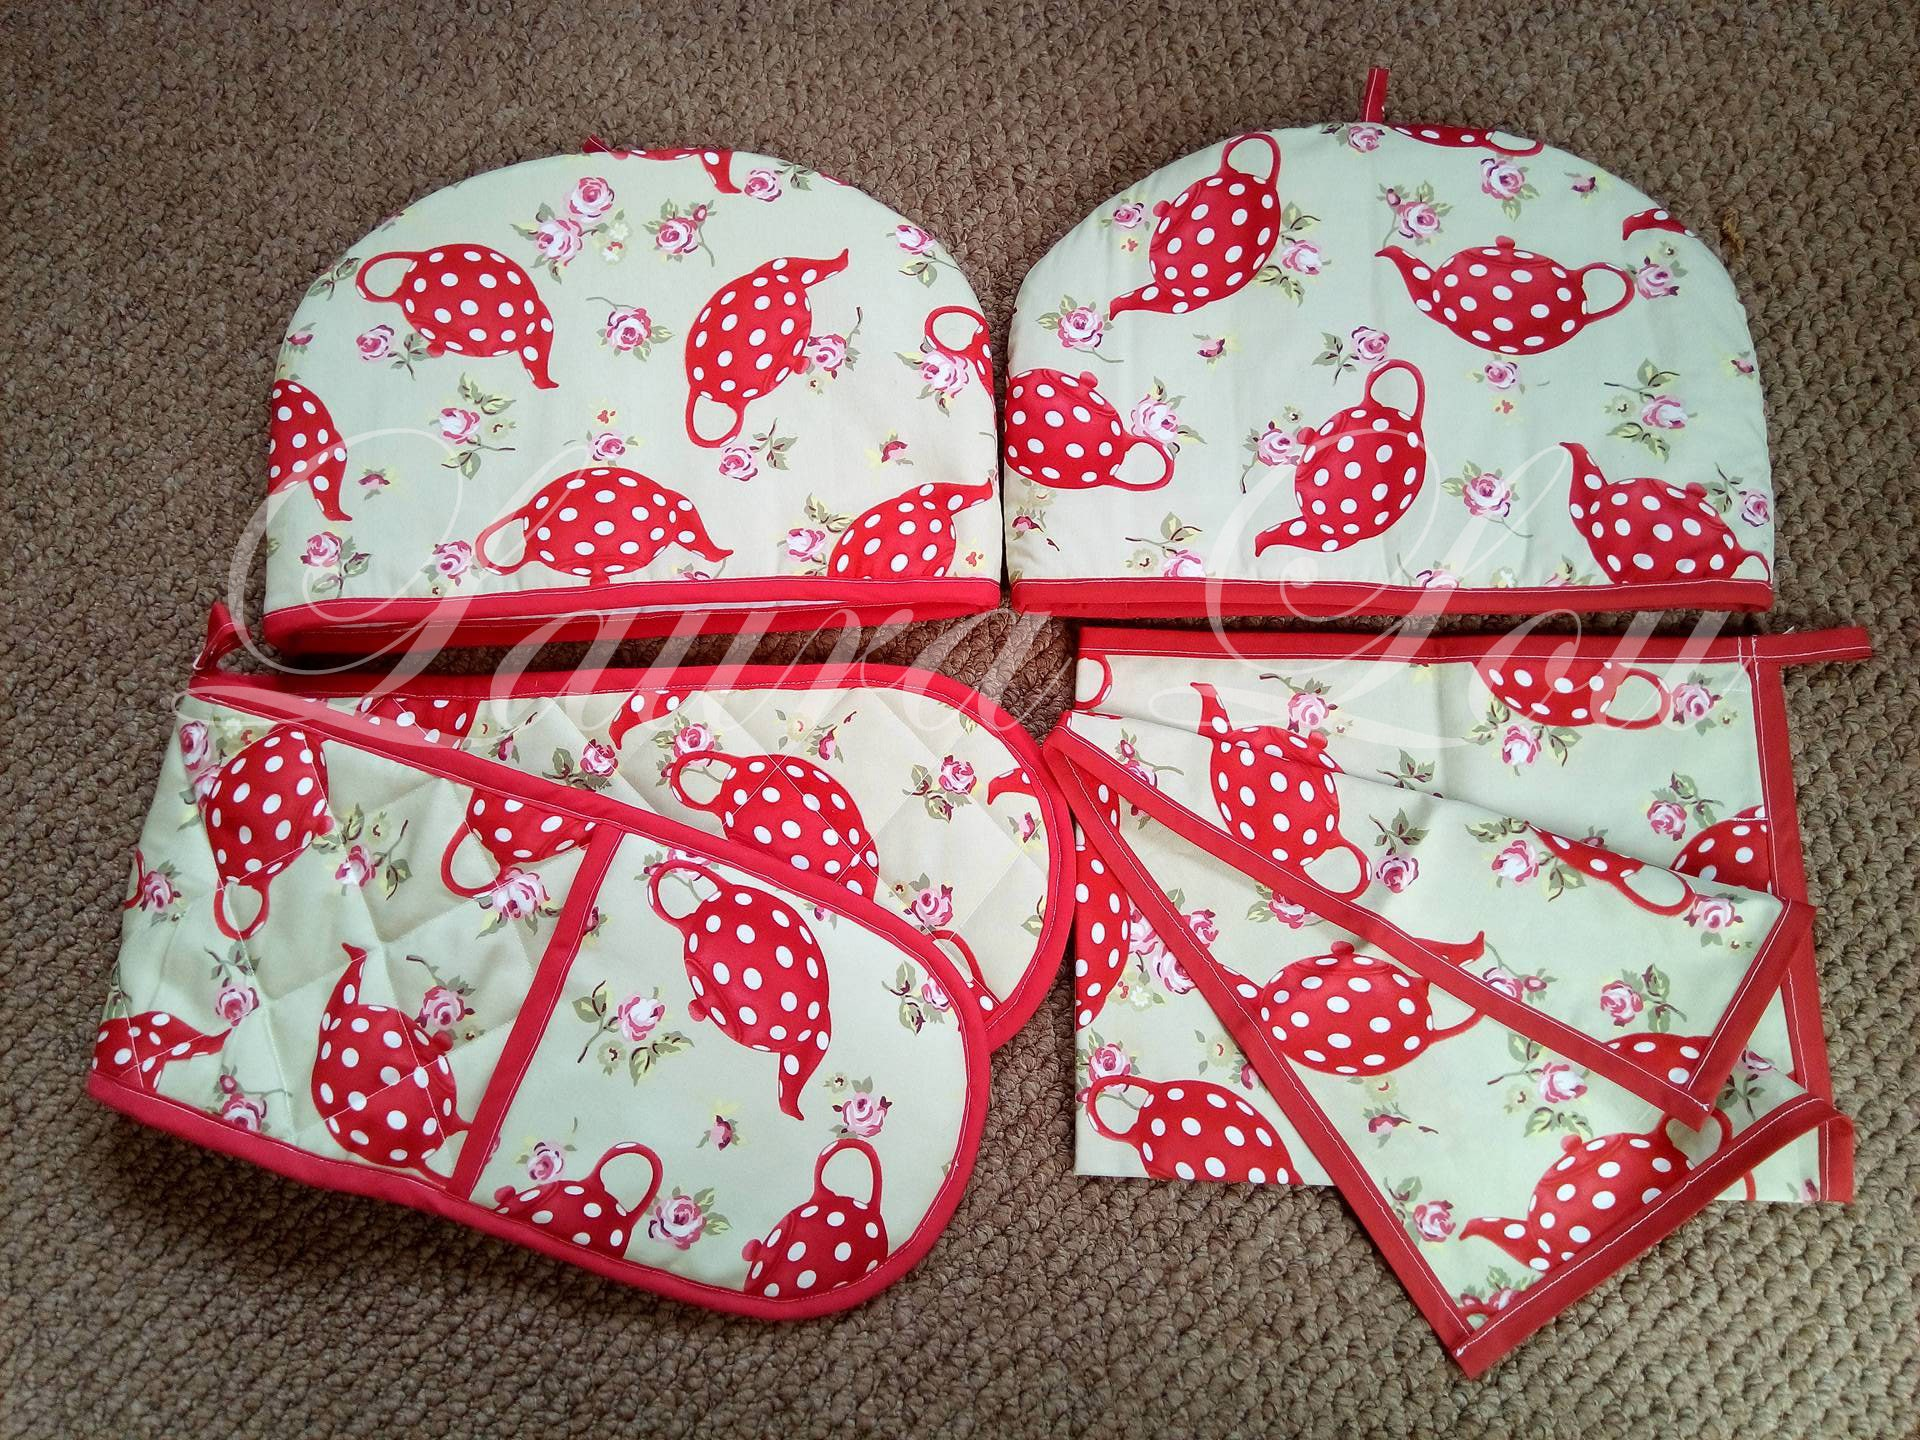 Tea Cosy  Oven Gloves or Tea Cloth 2 piece sets  Red and green Teapot print